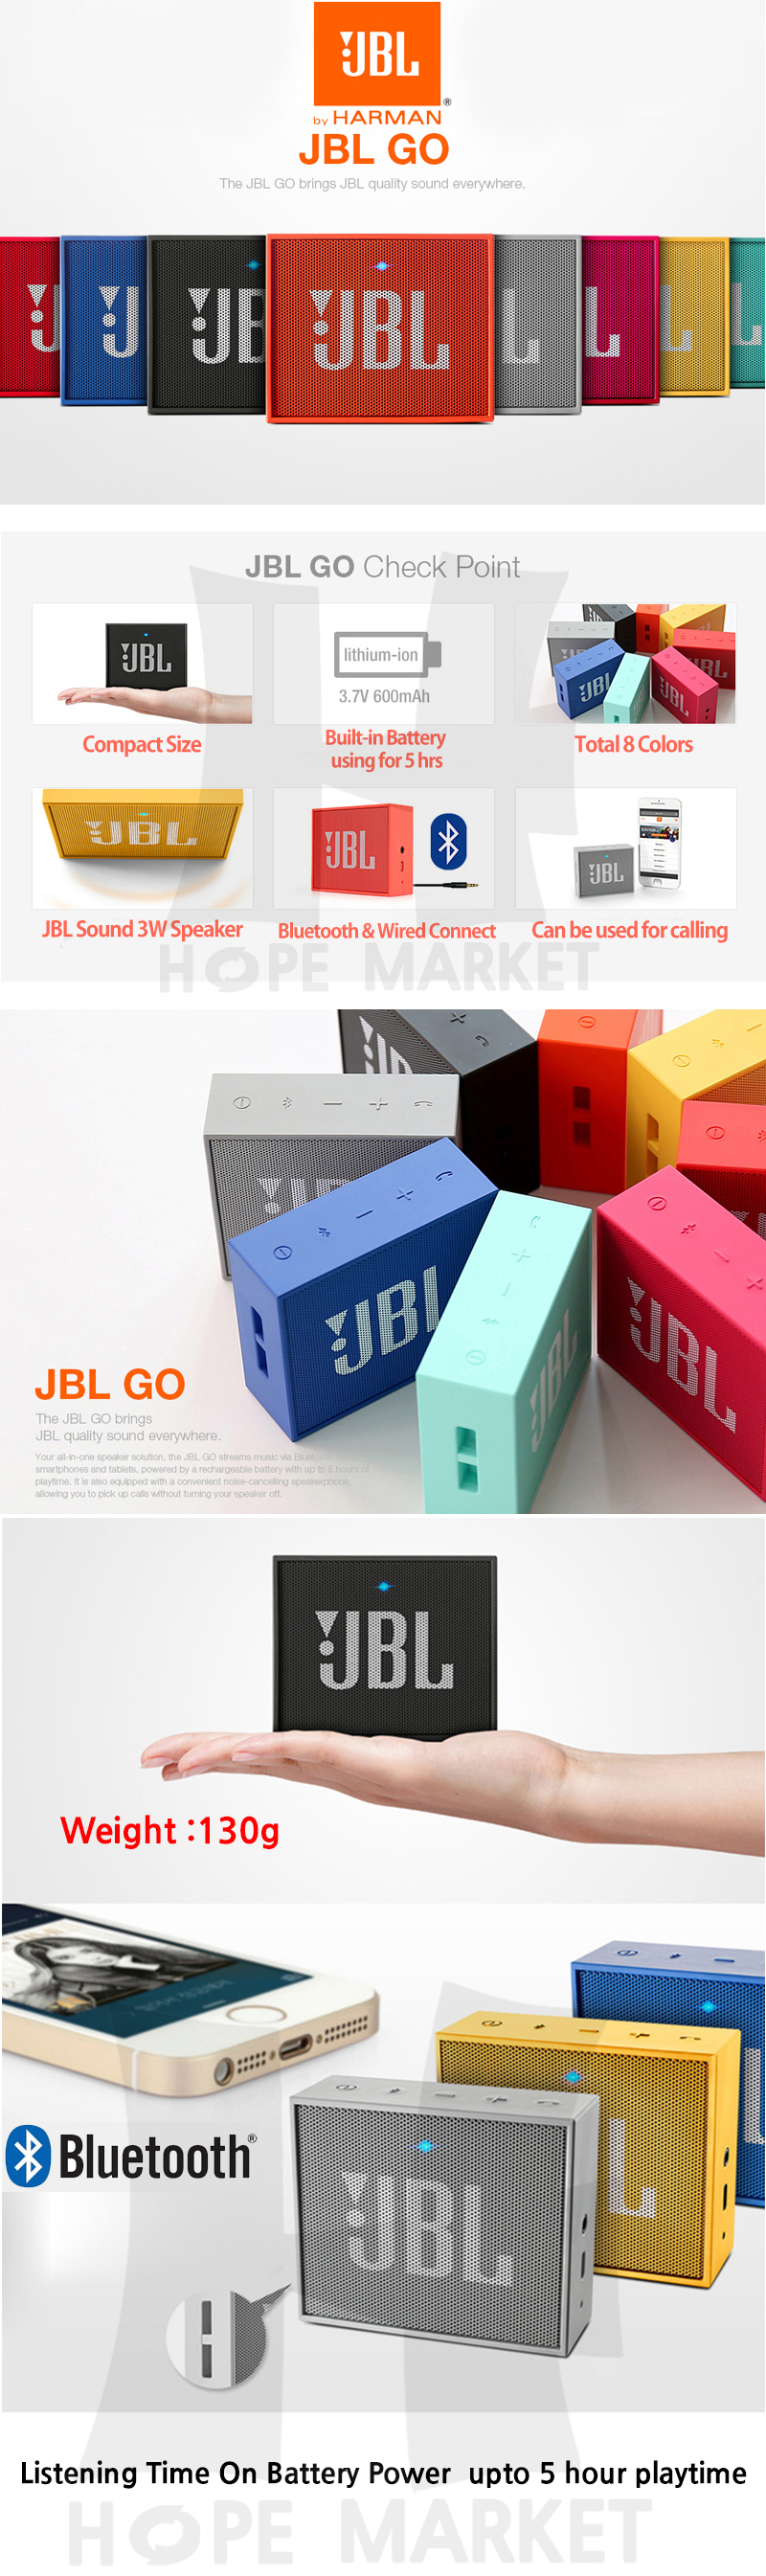 Every Need Want Day Jbl Go Portable Mini Bluetooth Speaker Rechargable Battery The Is Easily Recharged Which Saves You Hassles And Money